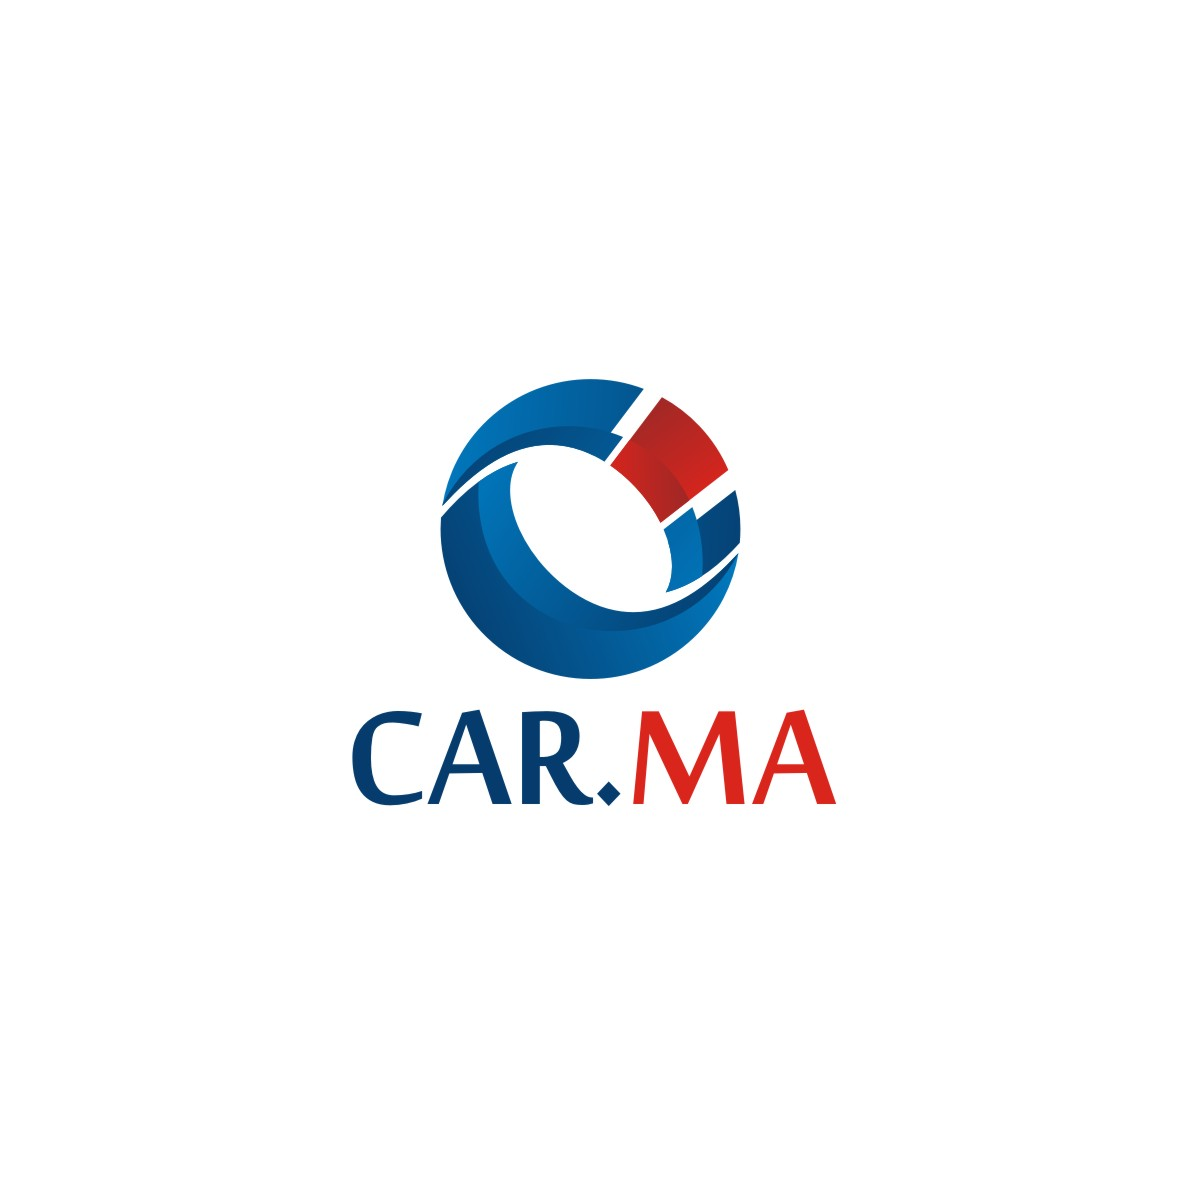 Logo Design by arteo_design - Entry No. 171 in the Logo Design Contest New Logo Design for car.ma.